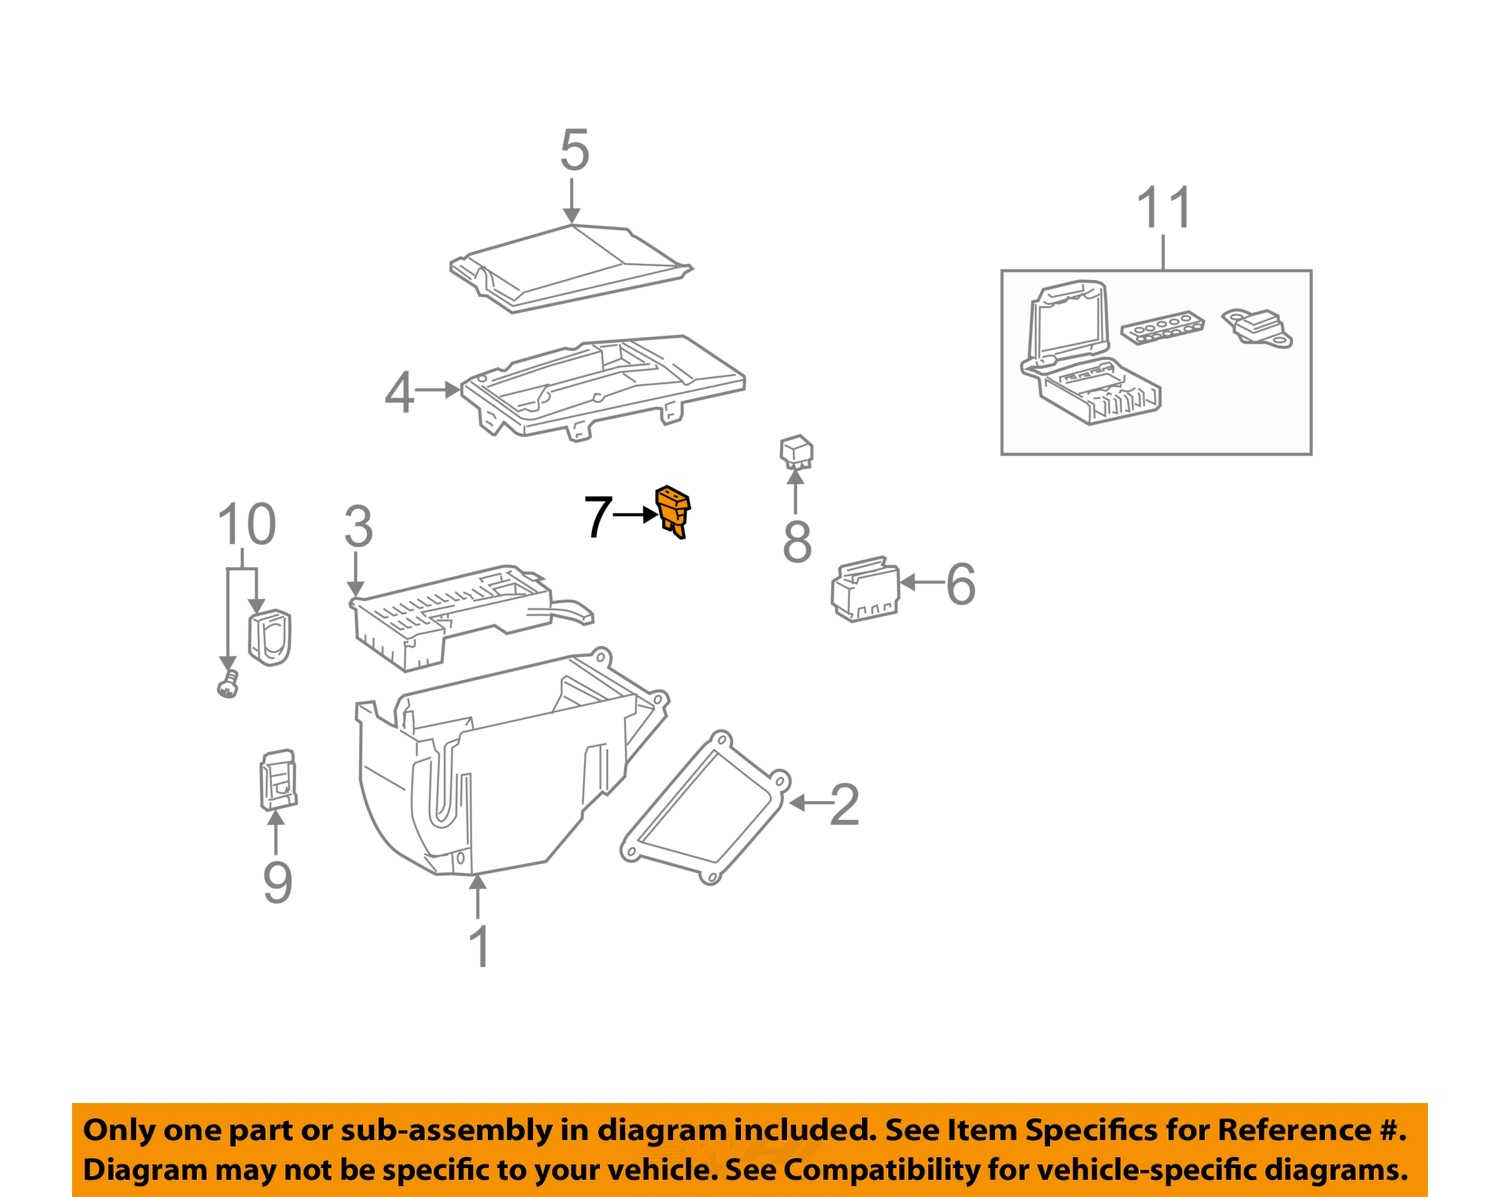 chrysler oem 04-08 crossfire 3.2l-v6-fuse atc5 98 s10 2 2l engine diagram chrysler 2 2l engine diagram